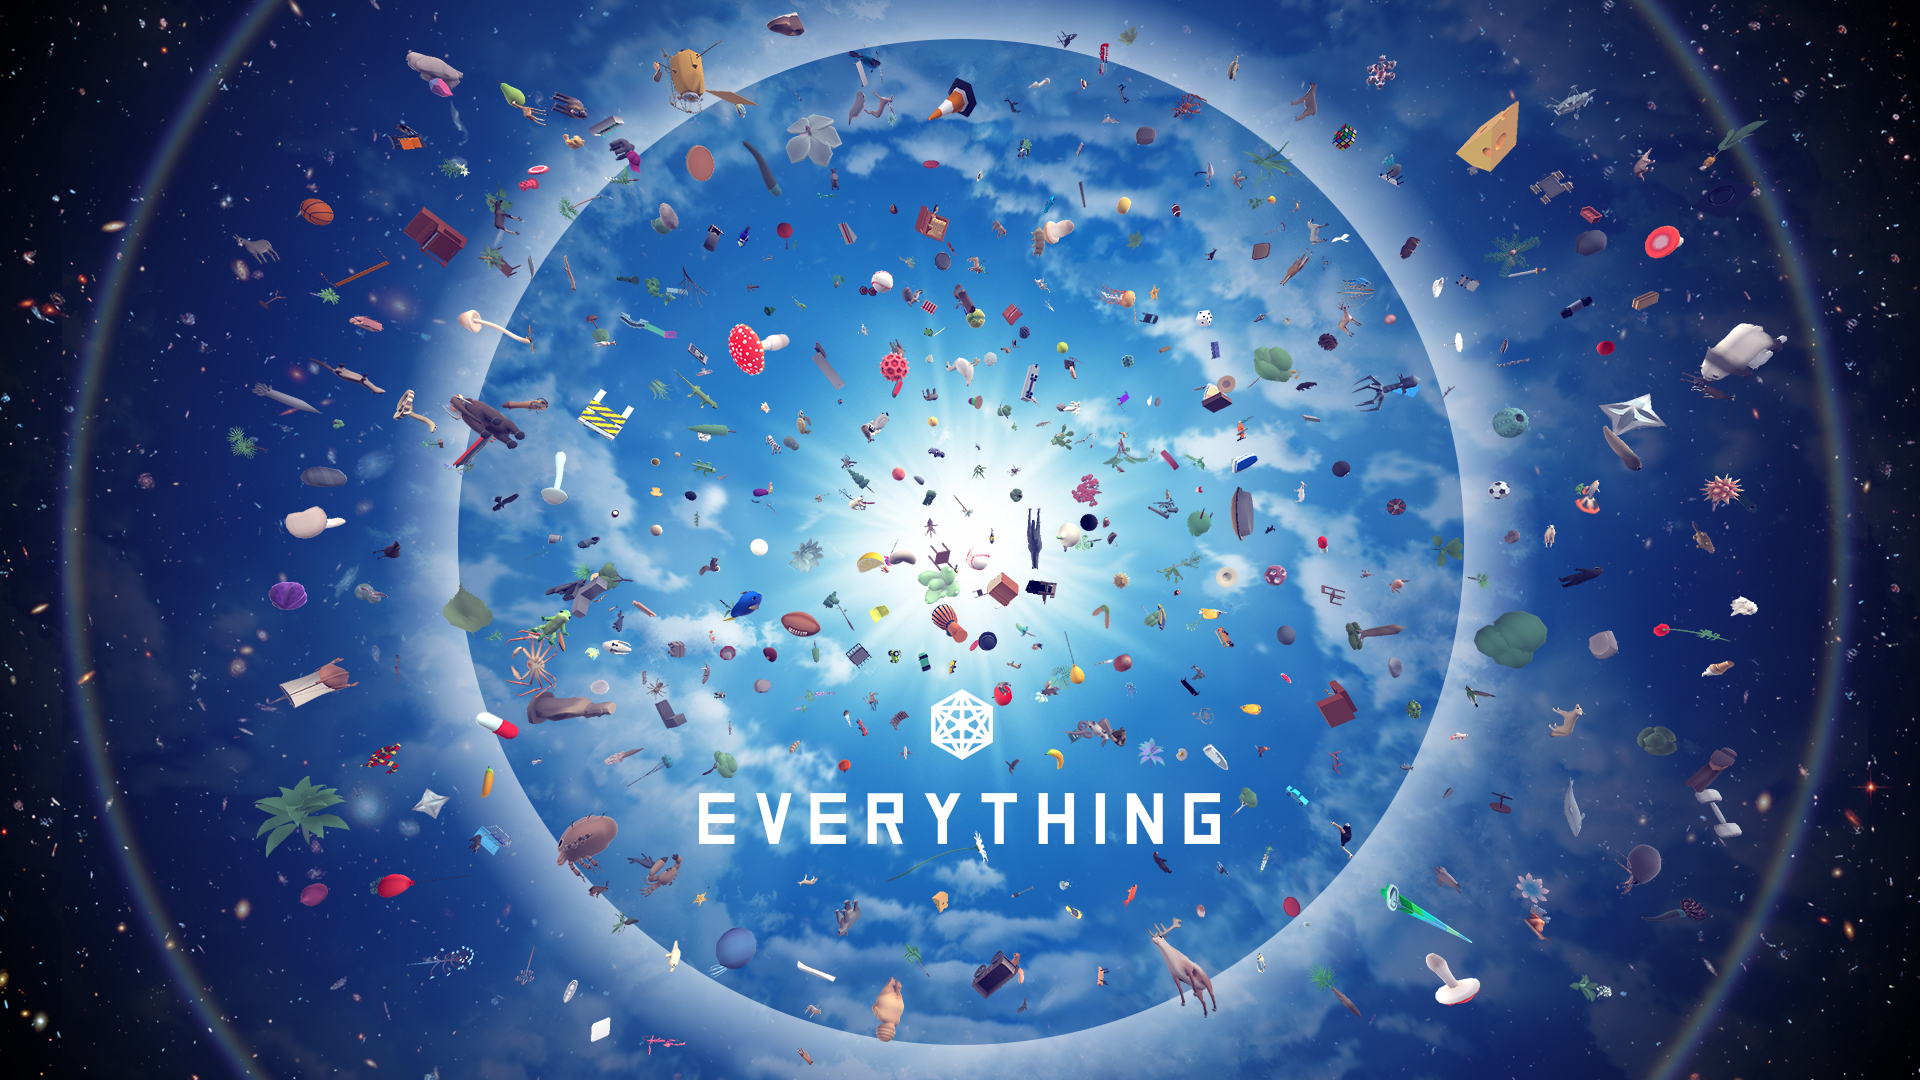 Free on Epic Games Store This Week: Everything 7